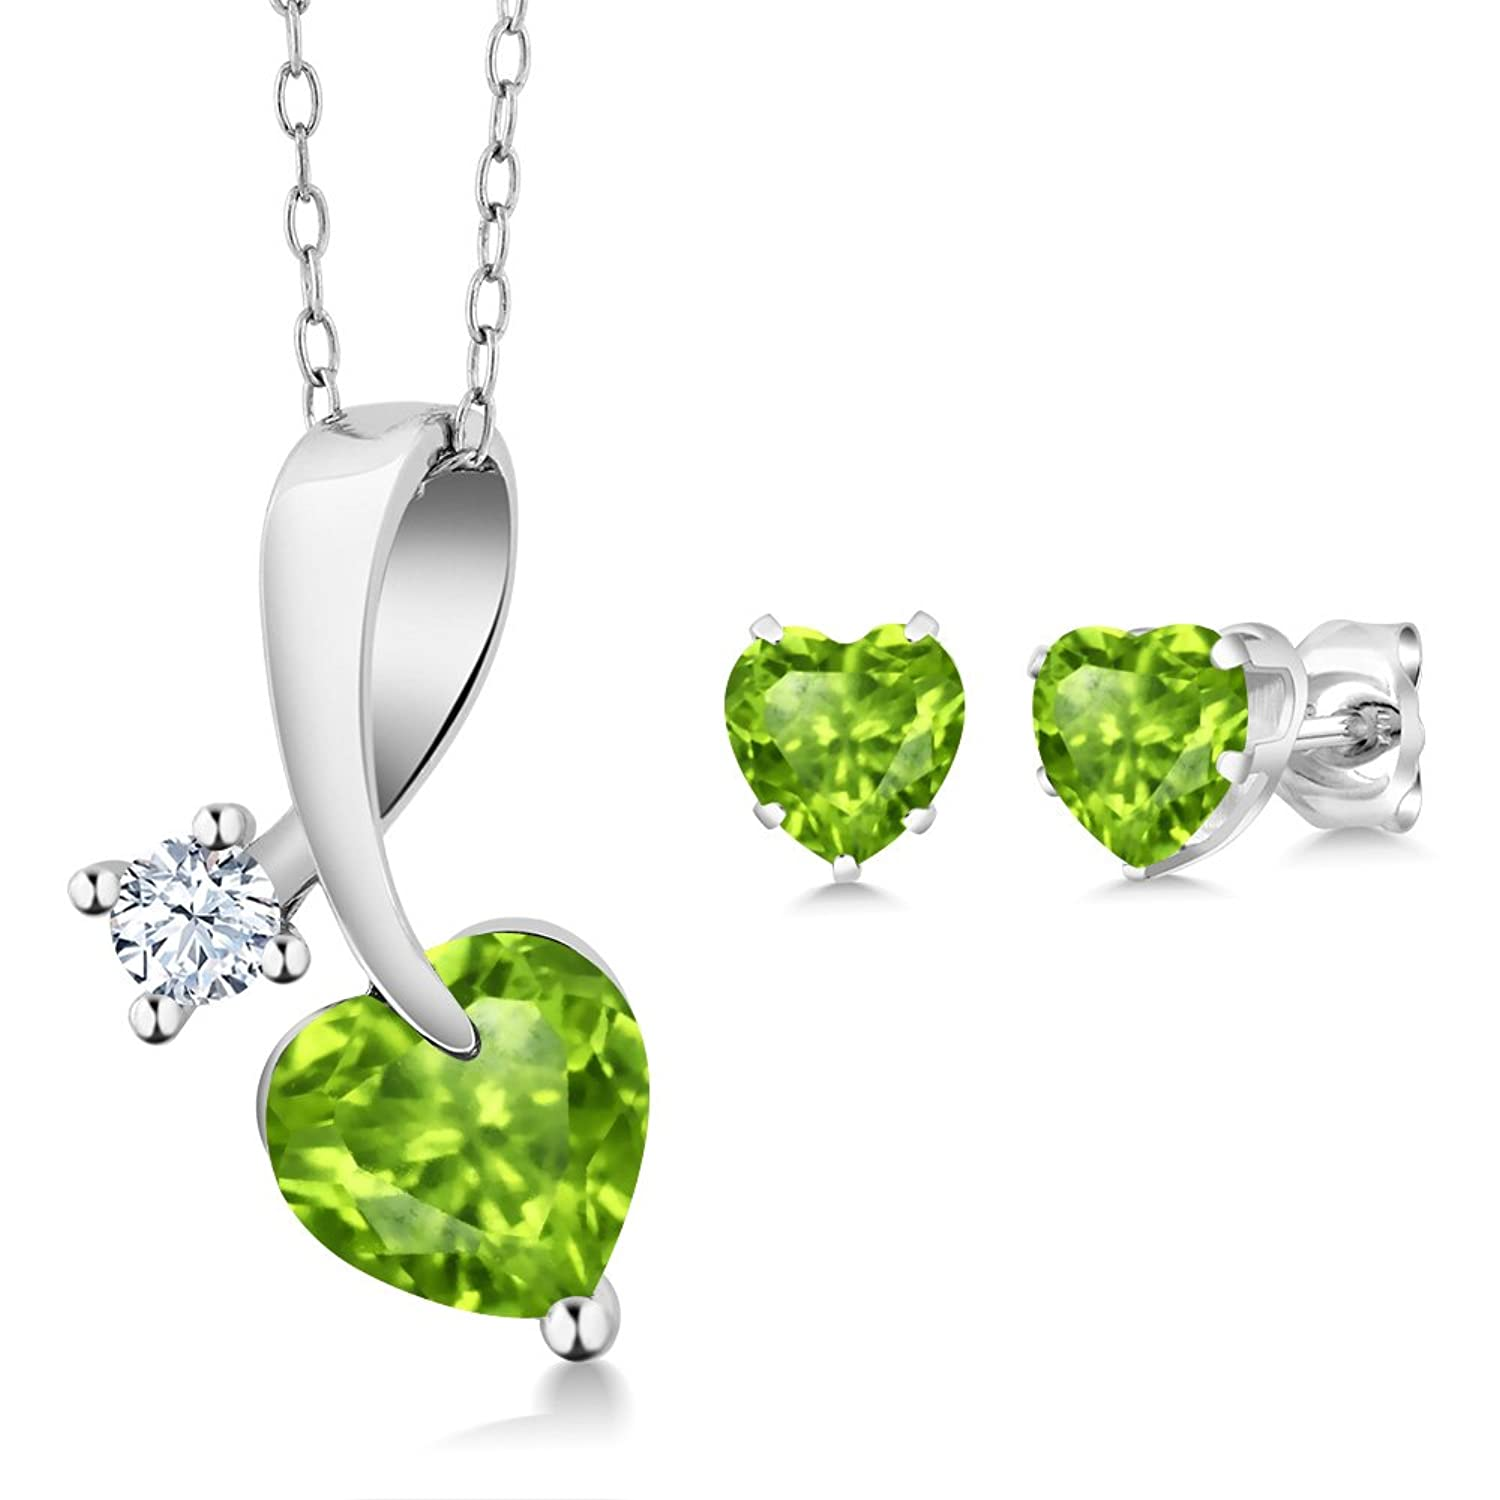 2.31 Ct Heart Shape Green Peridot 925 Sterling Silver Pendant Earrings Set with 18 Inch Silver Chain